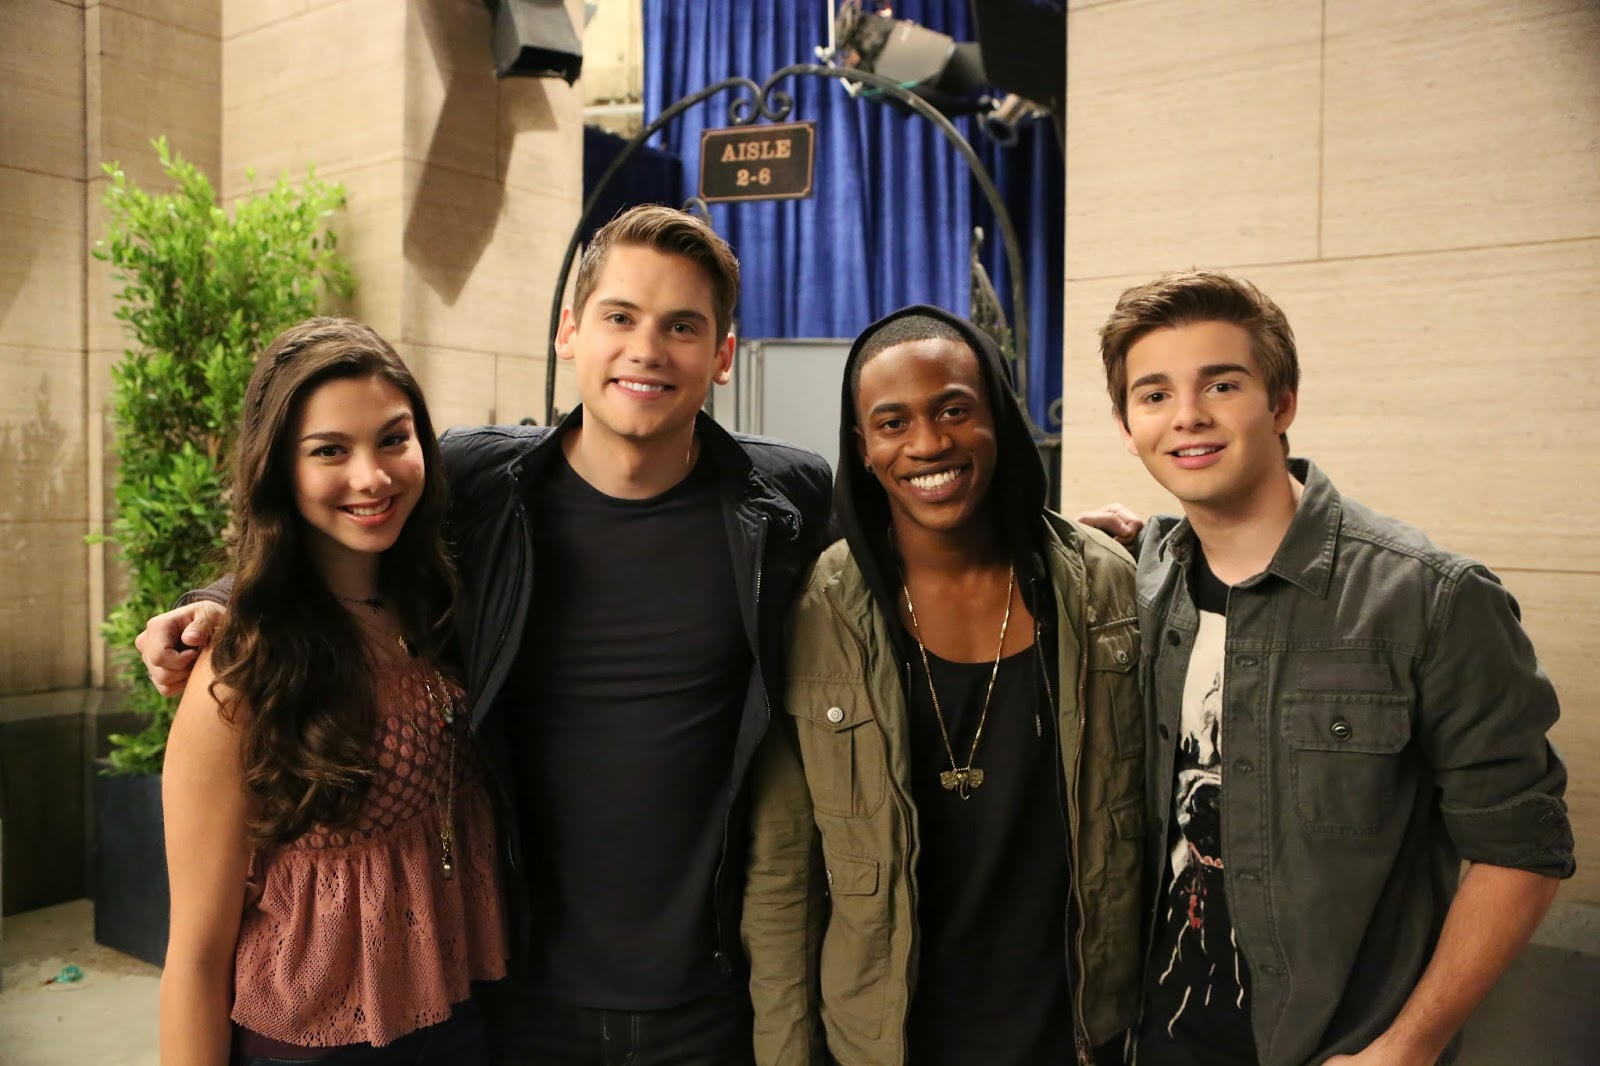 In the brand new the thundermans episode shred it go everybody s going crazy for the coolest band in town however phoebe kira kosarin is devastated